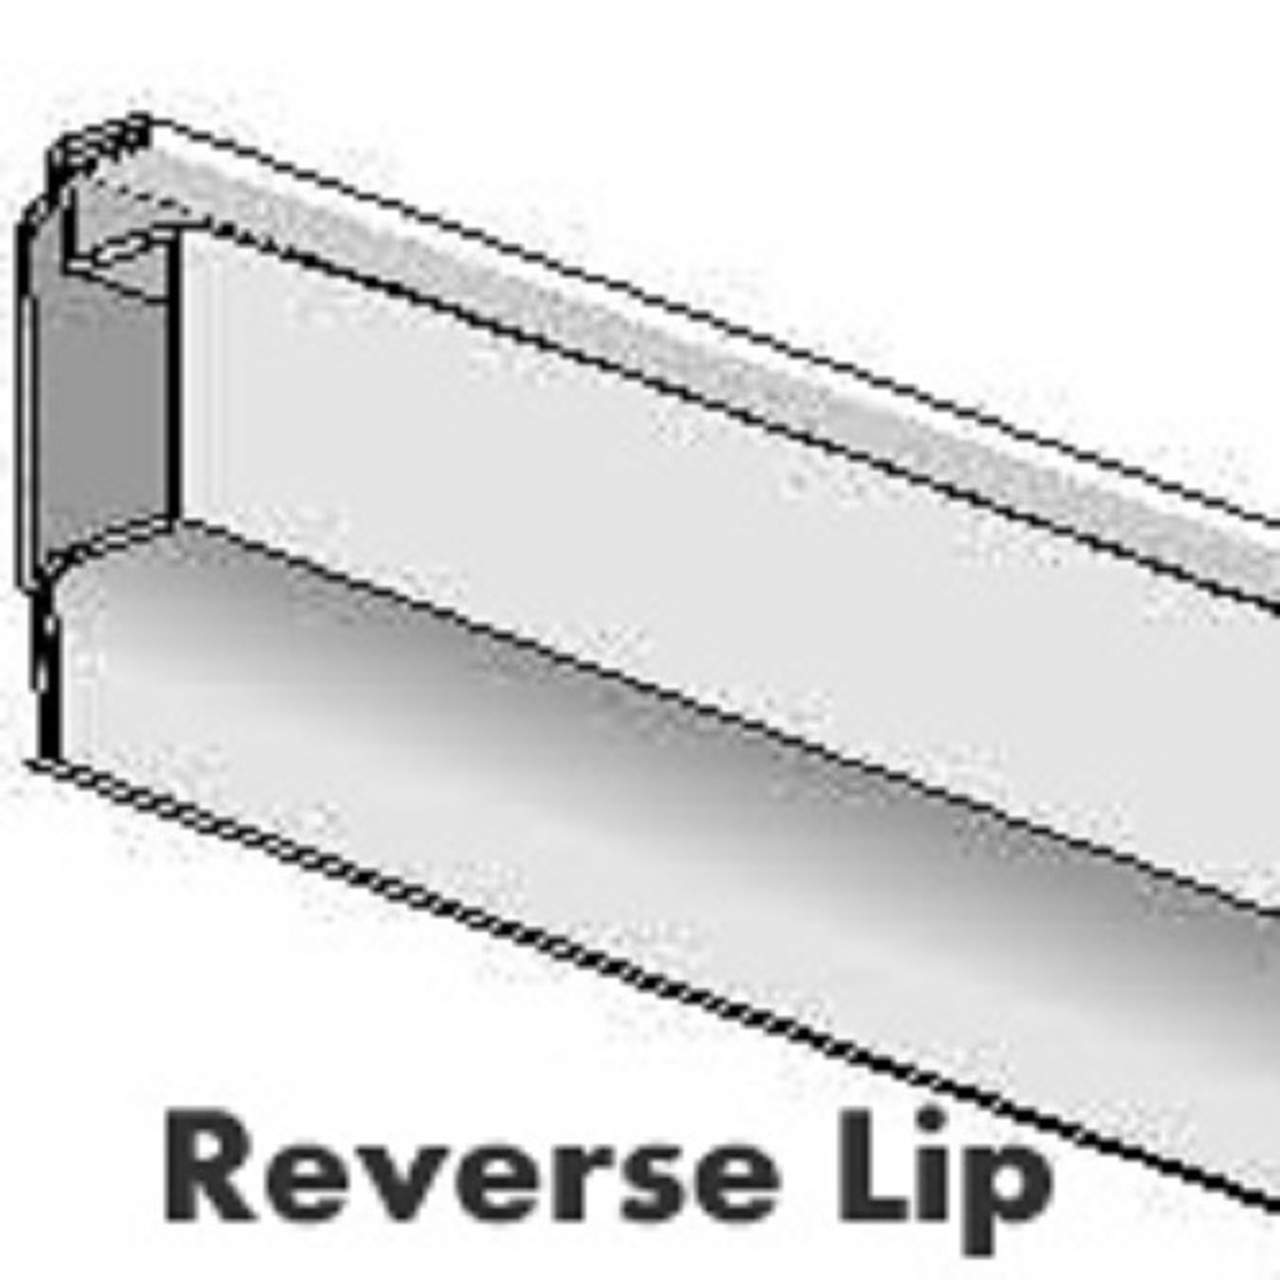 Lip Frame Window Screens - Measure Includes Lip